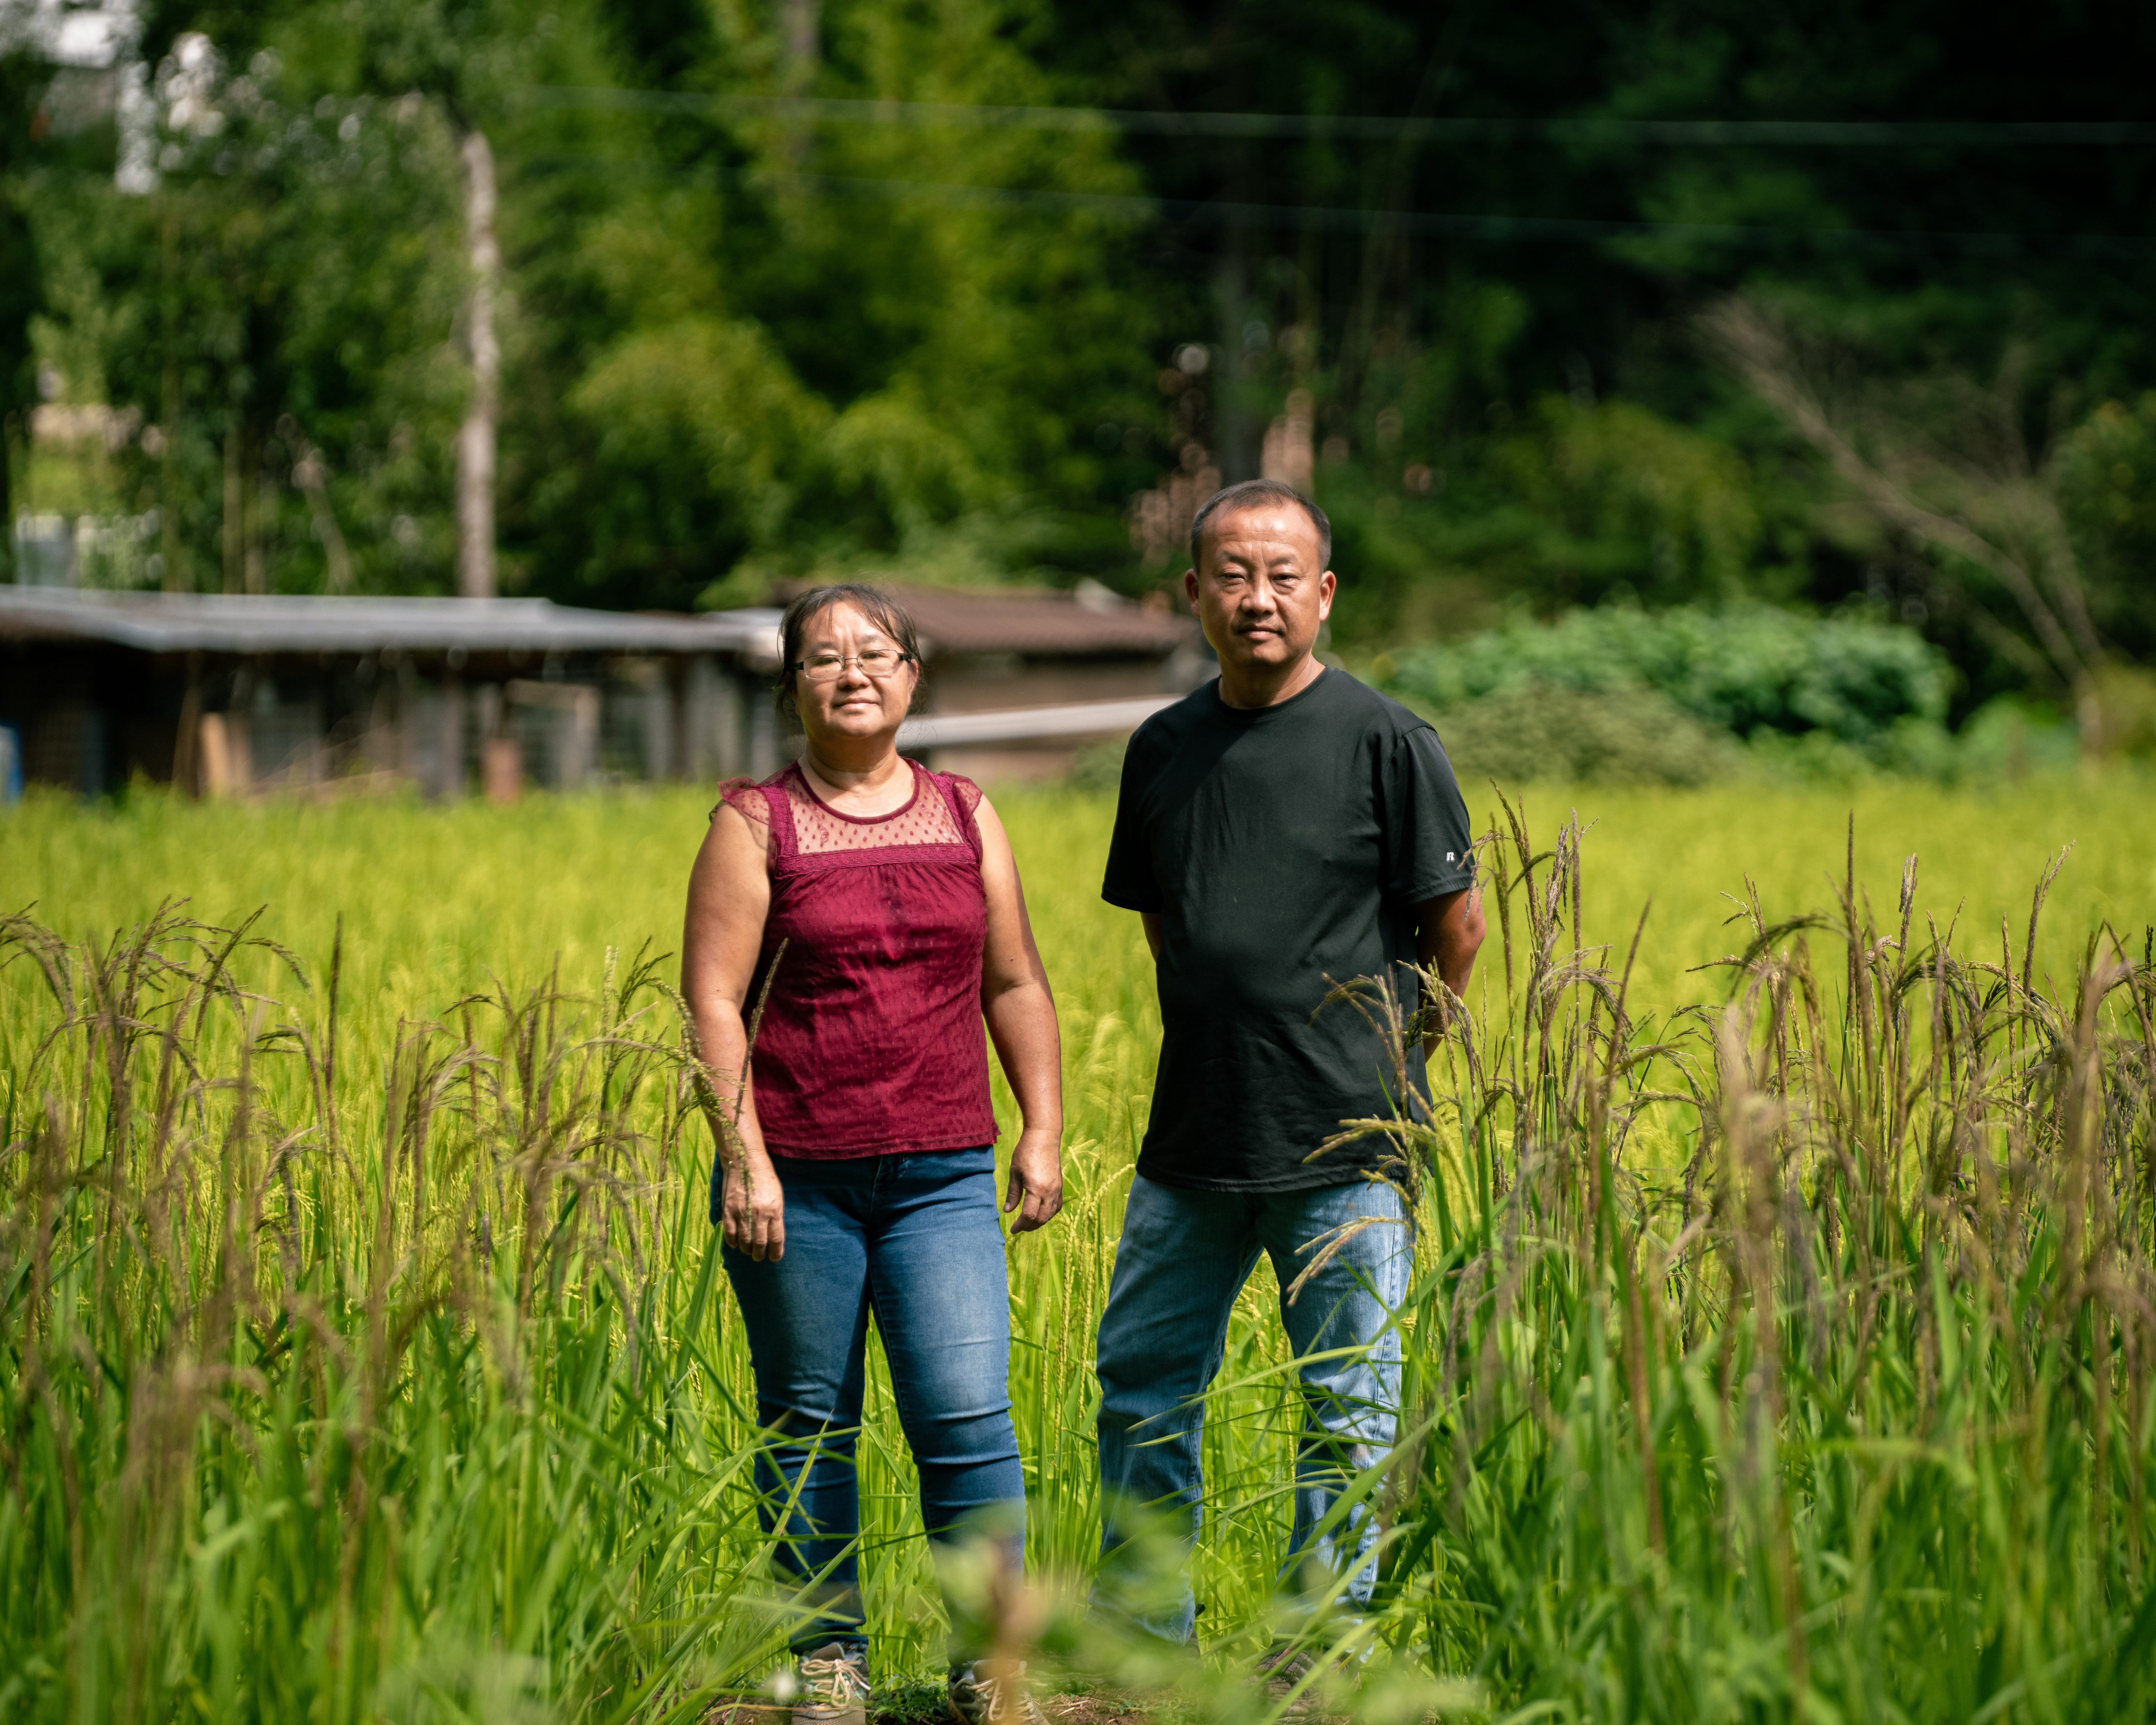 Chue and Tou Lee at the Marion location of Lee's One Fortune Farm, a patchwork of family-managed farms in Western North Carolina producing Asian specialty produce and traditional sticky rice.